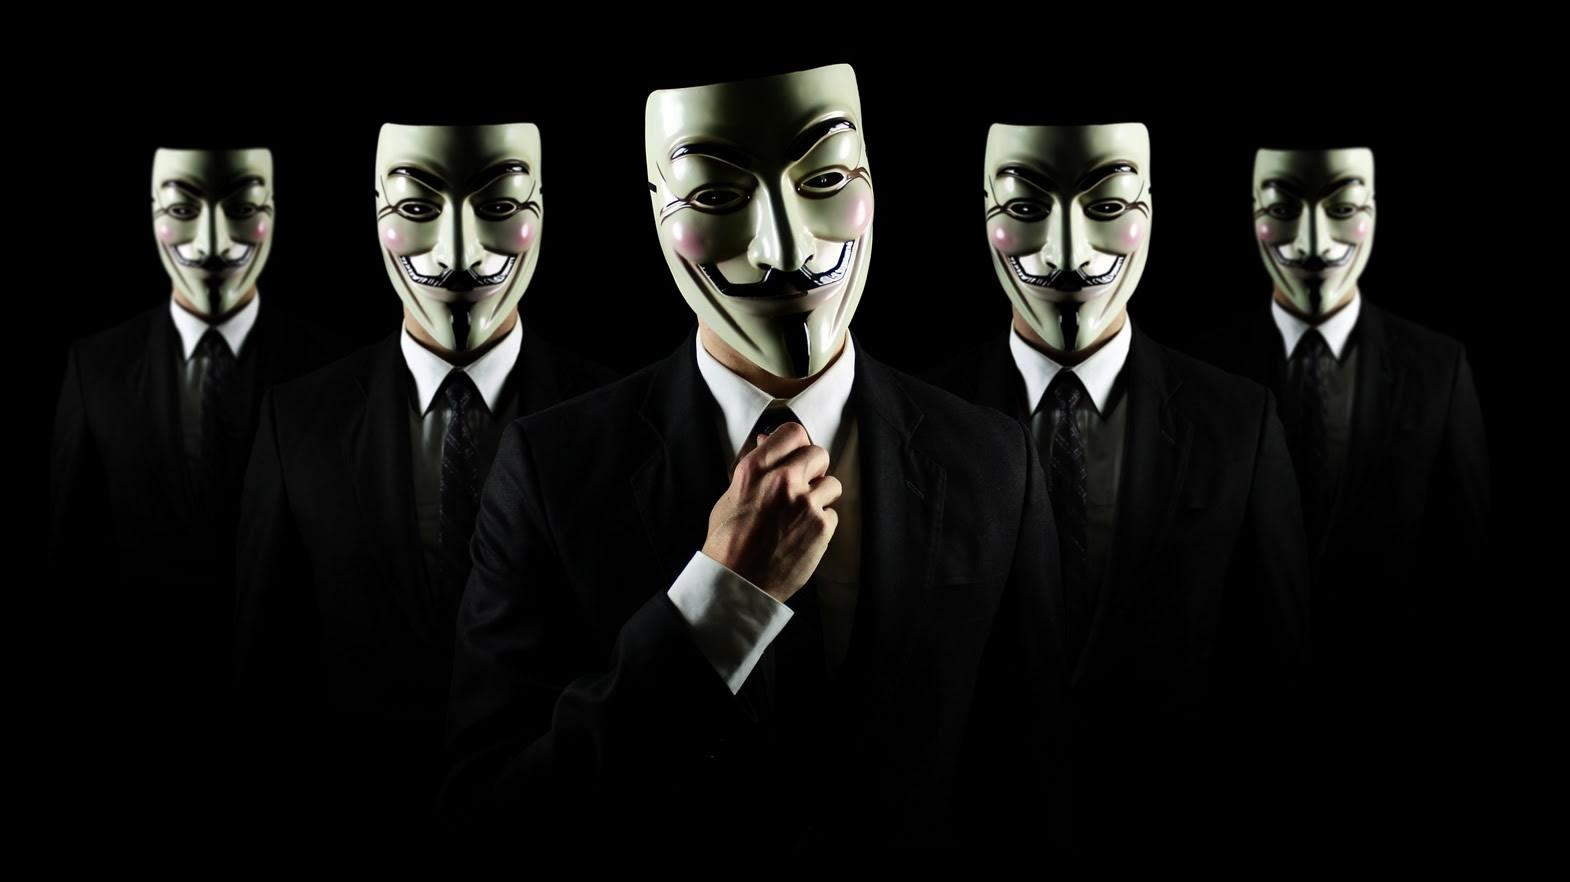 anonymous-hacktivists